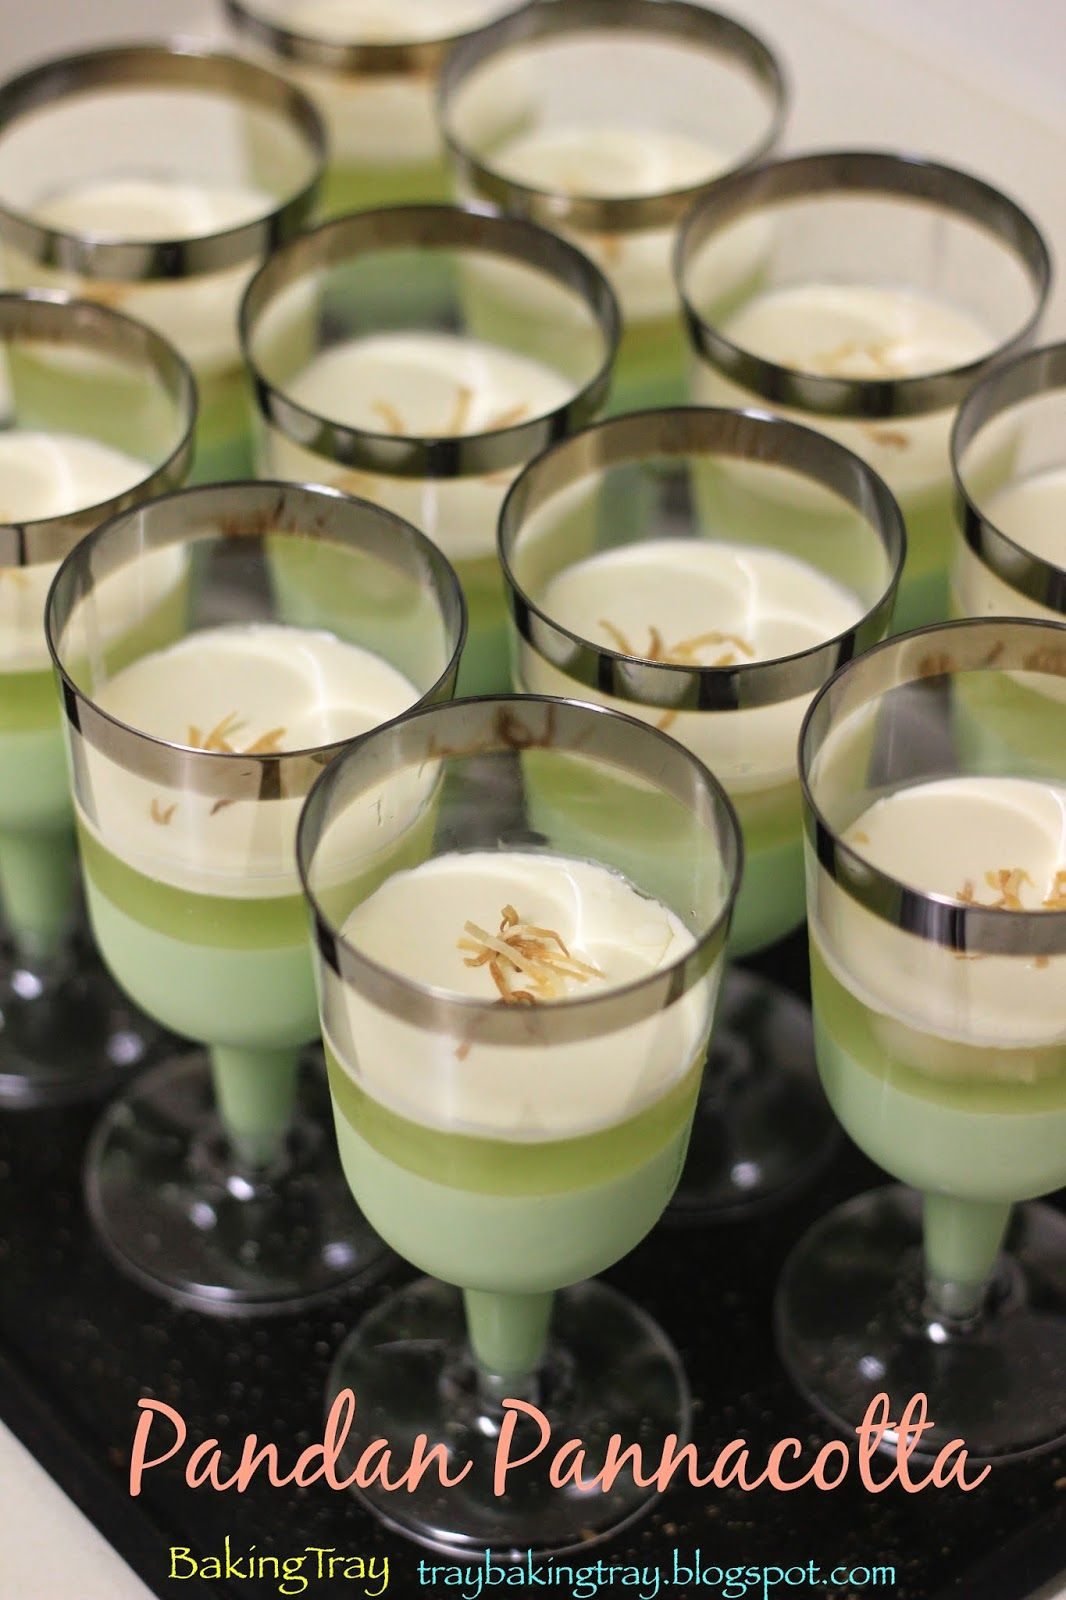 Pretty Pandan Pannacotta Coconut Desserts Recipes With Coconut Cream Asian Desserts